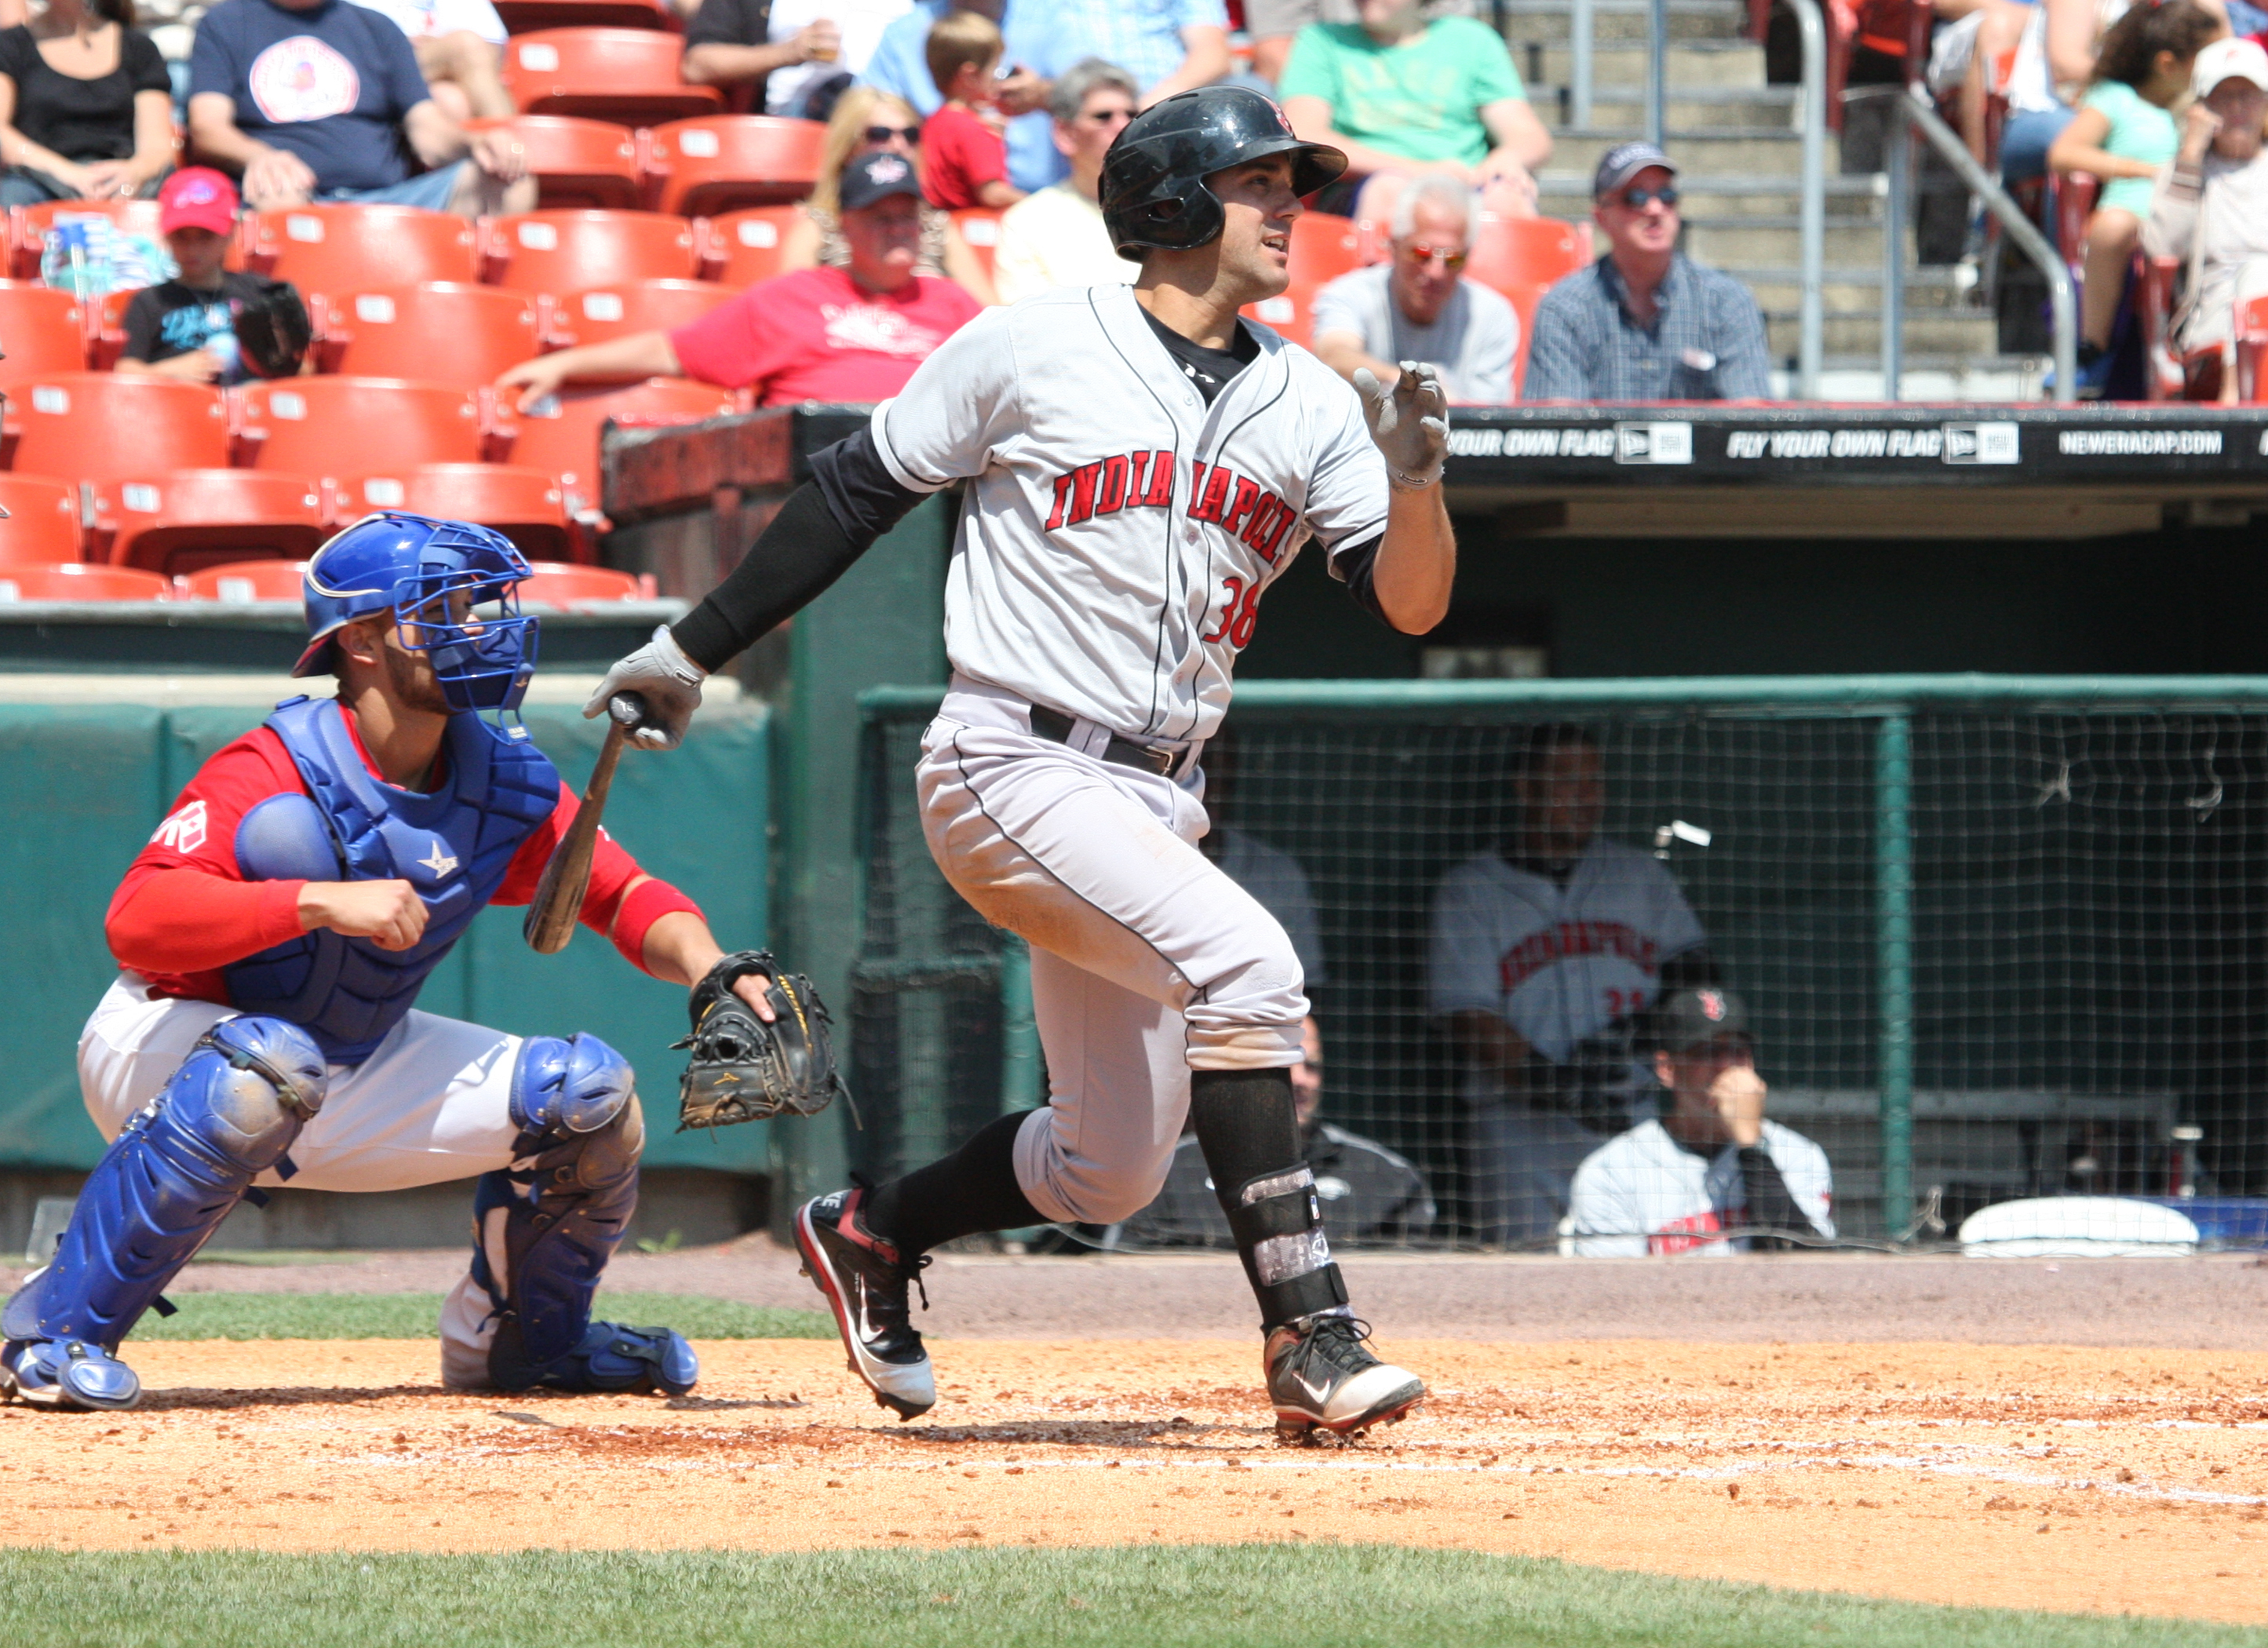 2014 Indianapolis Indians Season Recap and Top 10 Prospects